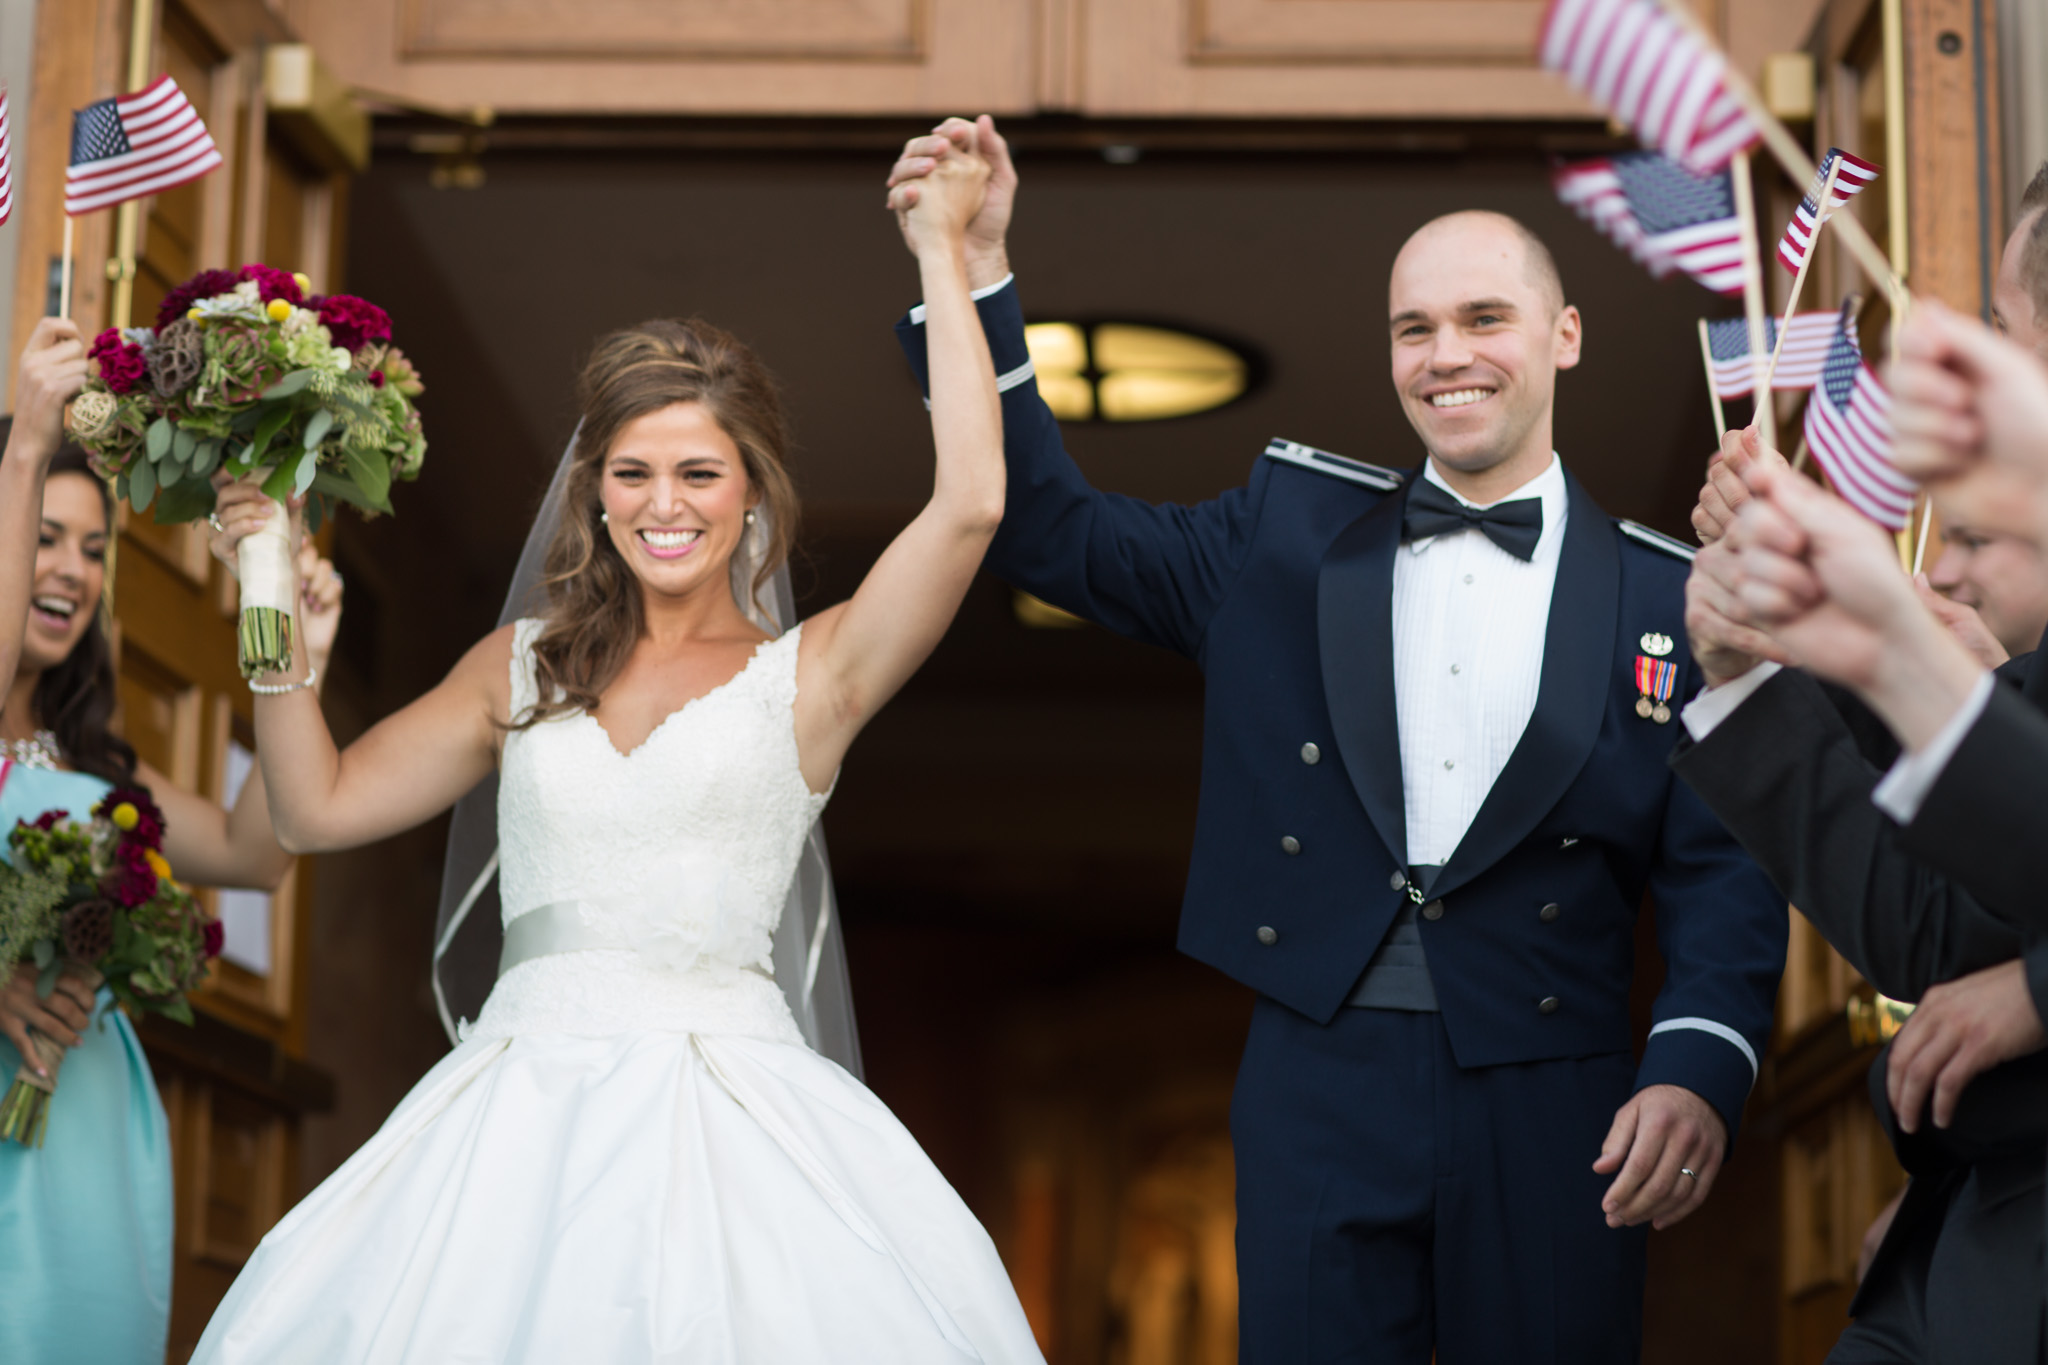 Military wedding ceremony exit Margaret Buttweiler Chicago Wedding Photographer With Jill Tiongco Web Res (1 of 1).jpg